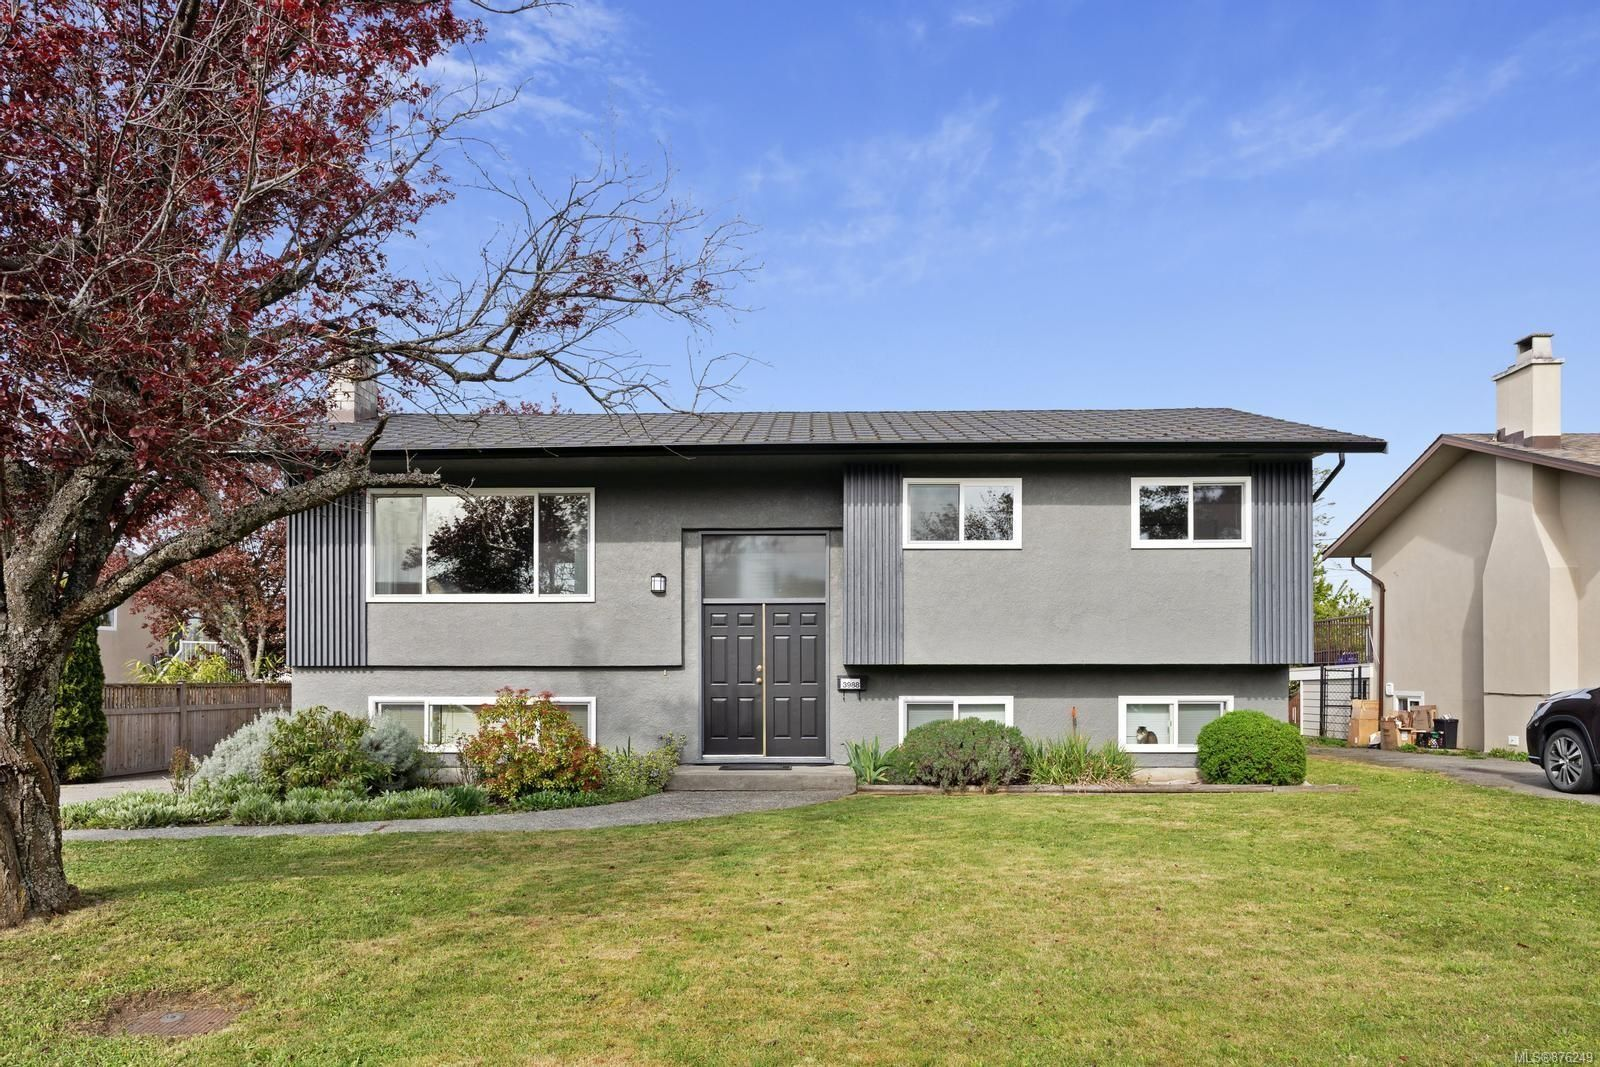 Main Photo: 3988 Larchwood Dr in : SE Lambrick Park House for sale (Saanich East)  : MLS®# 876249